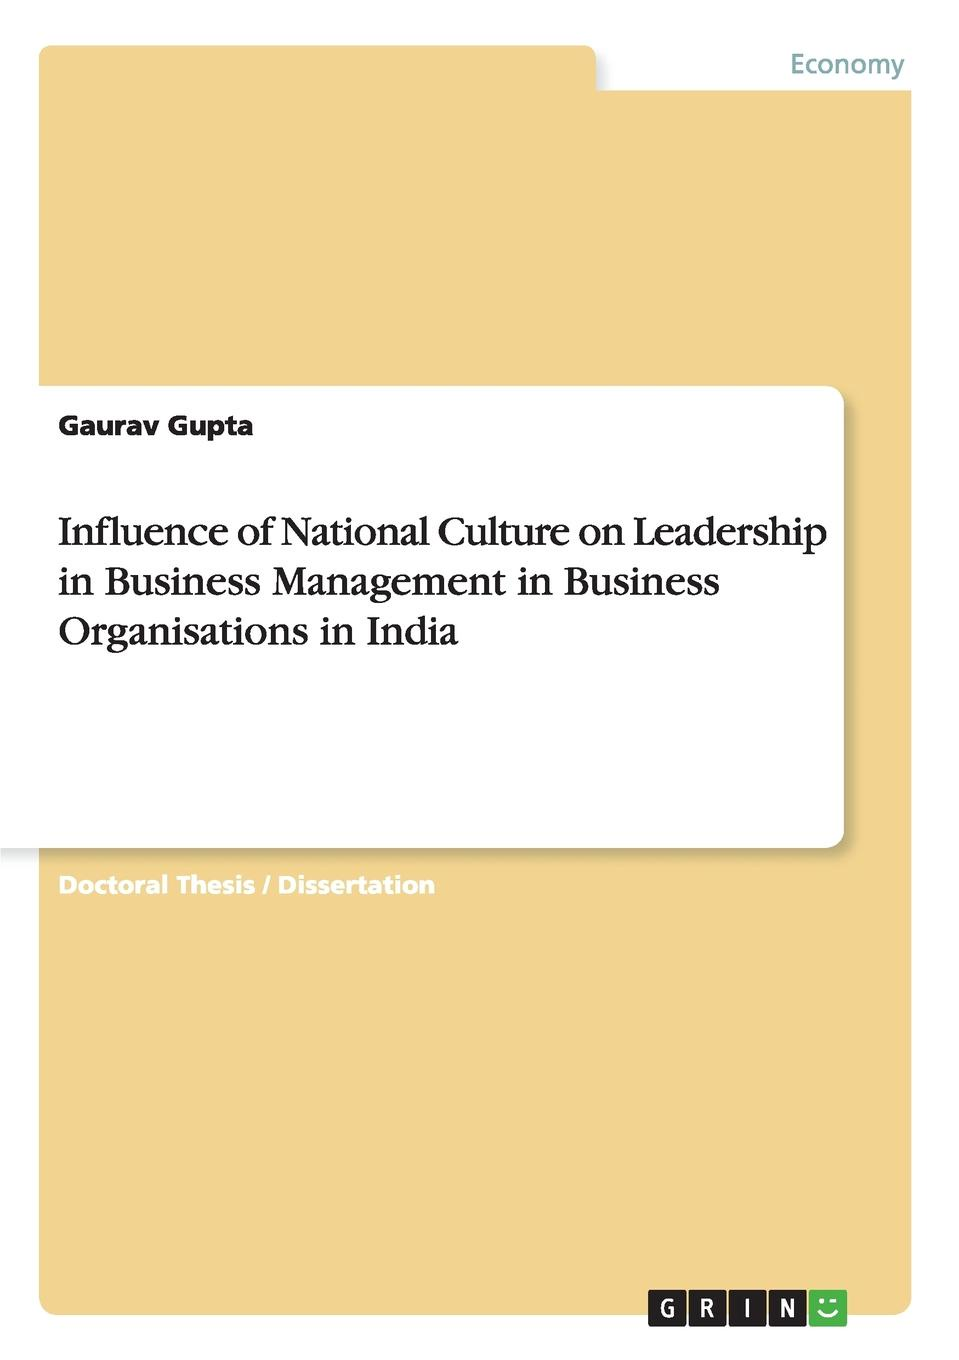 где купить Gaurav Gupta Influence of National Culture on Leadership in Business Management in Business Organisations in India недорого с доставкой